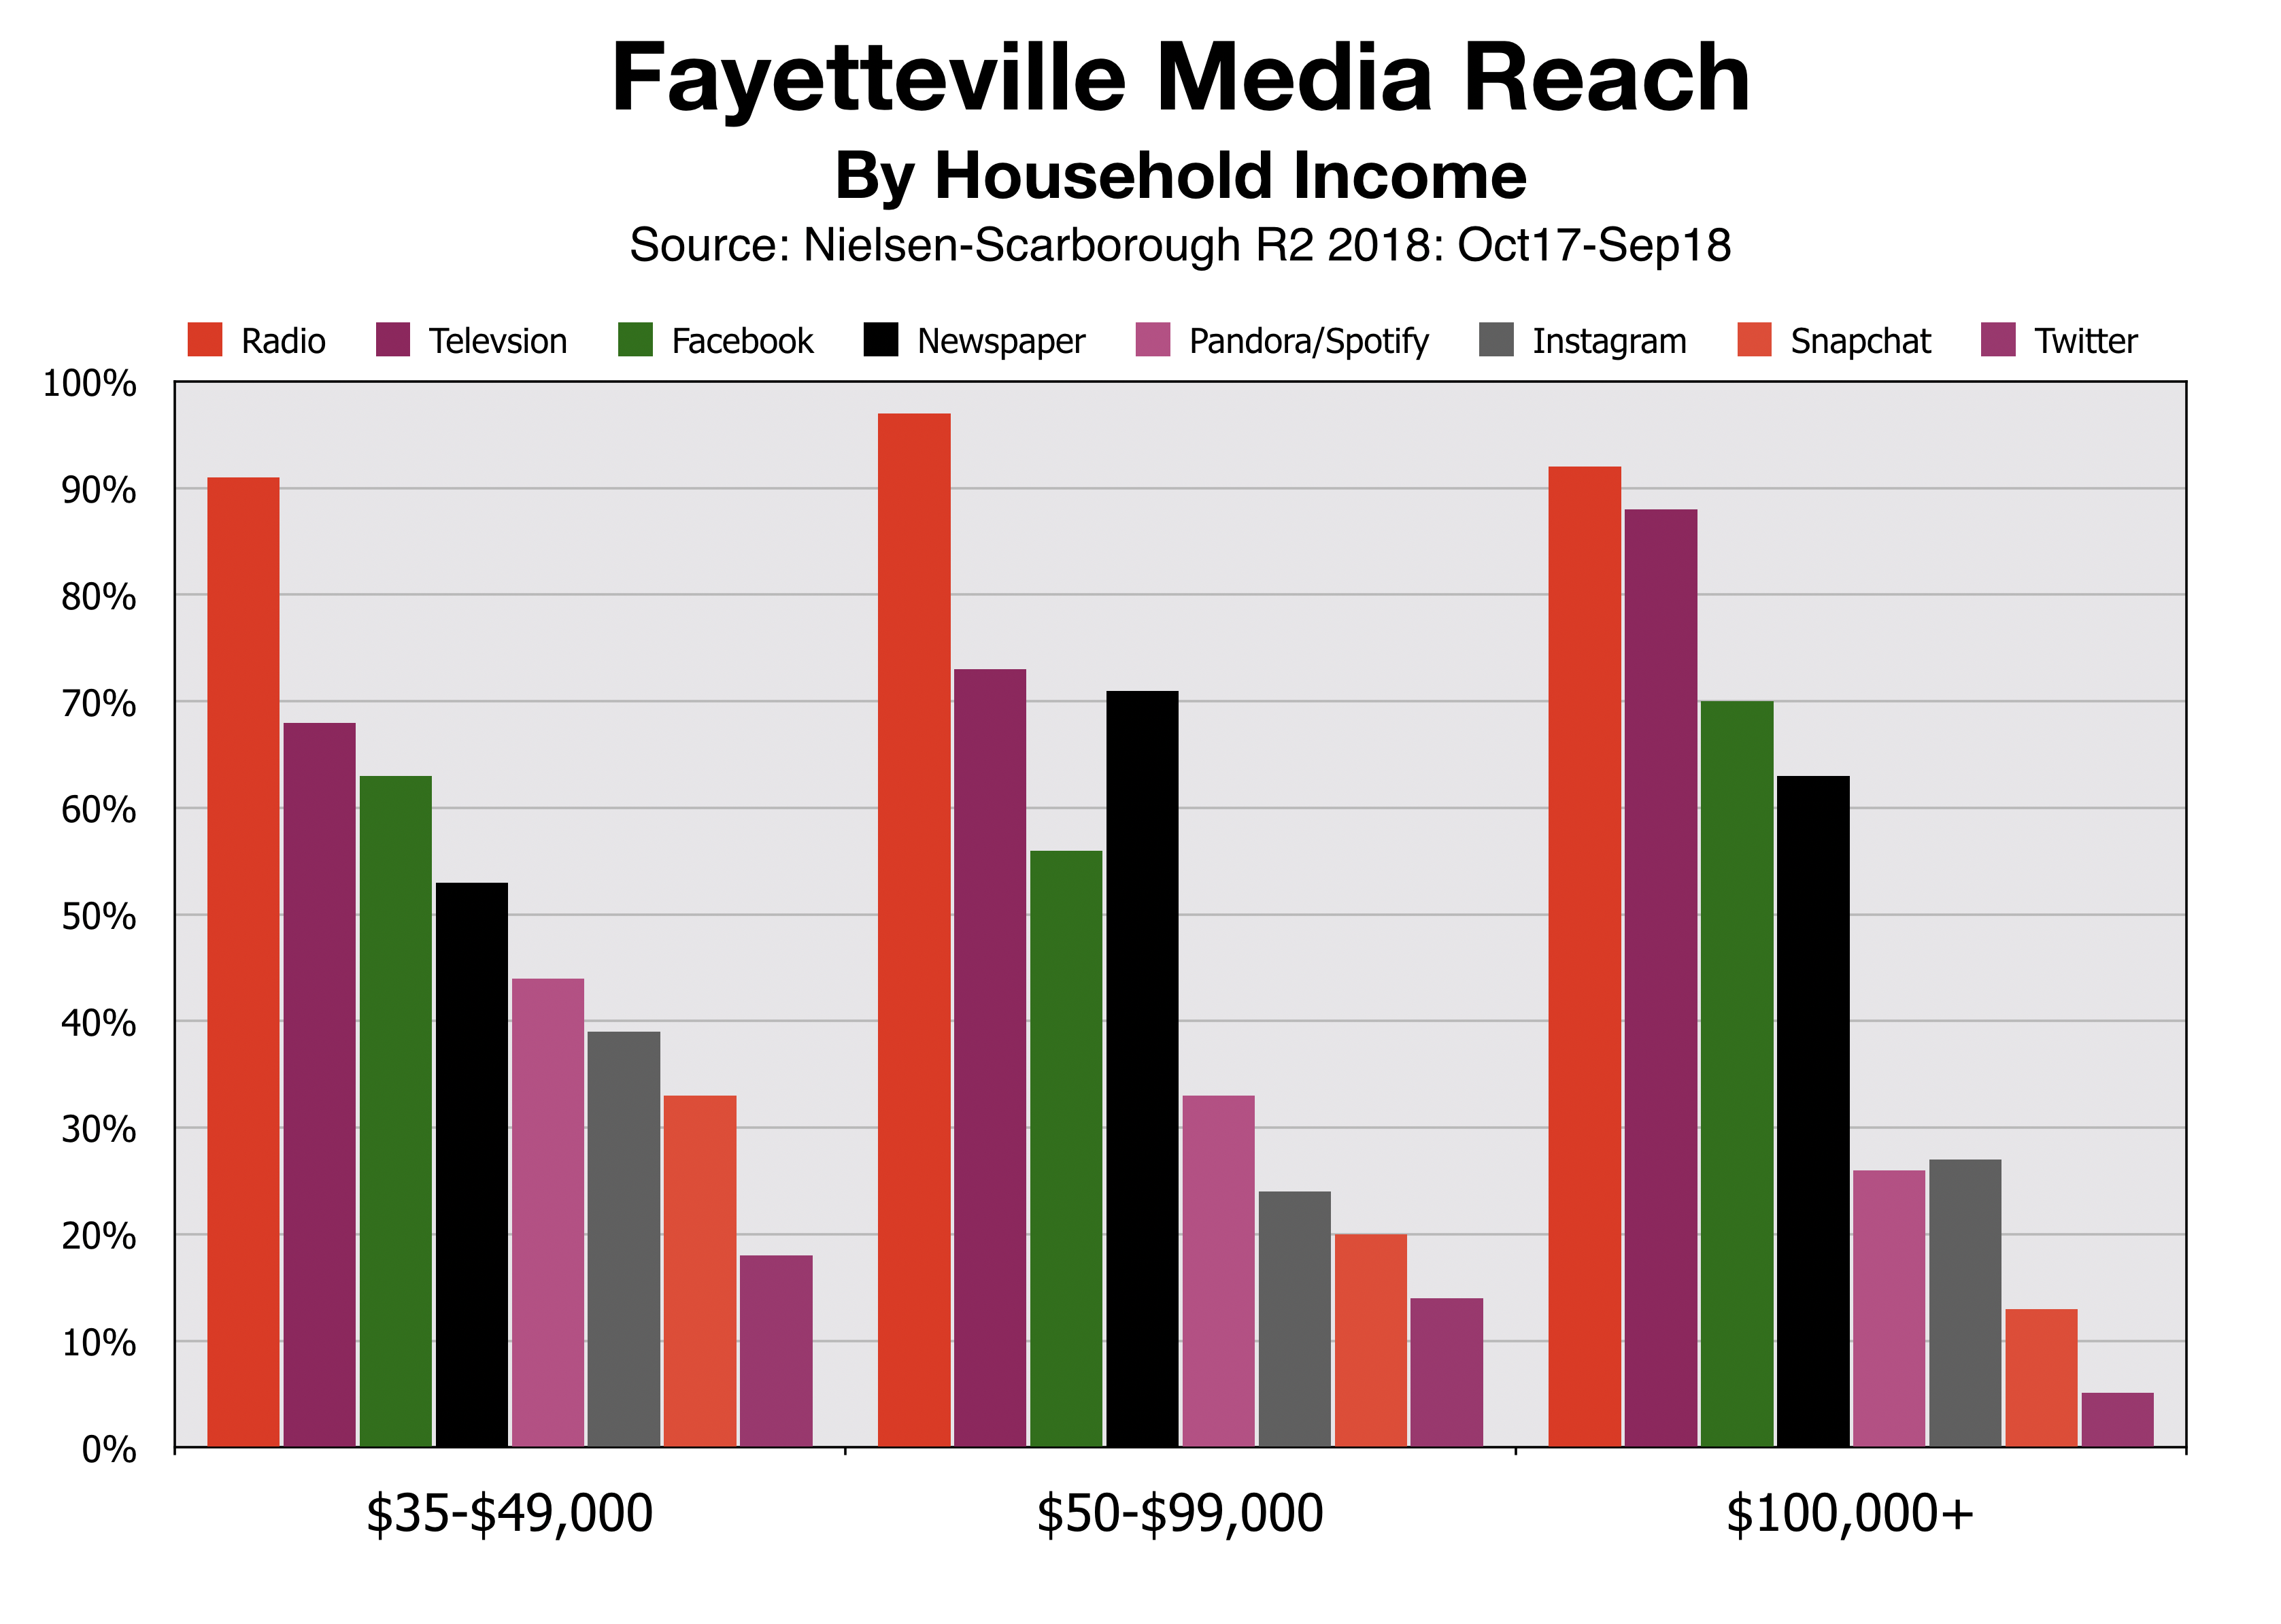 Advertising In Fayetteville Reach By Household Income